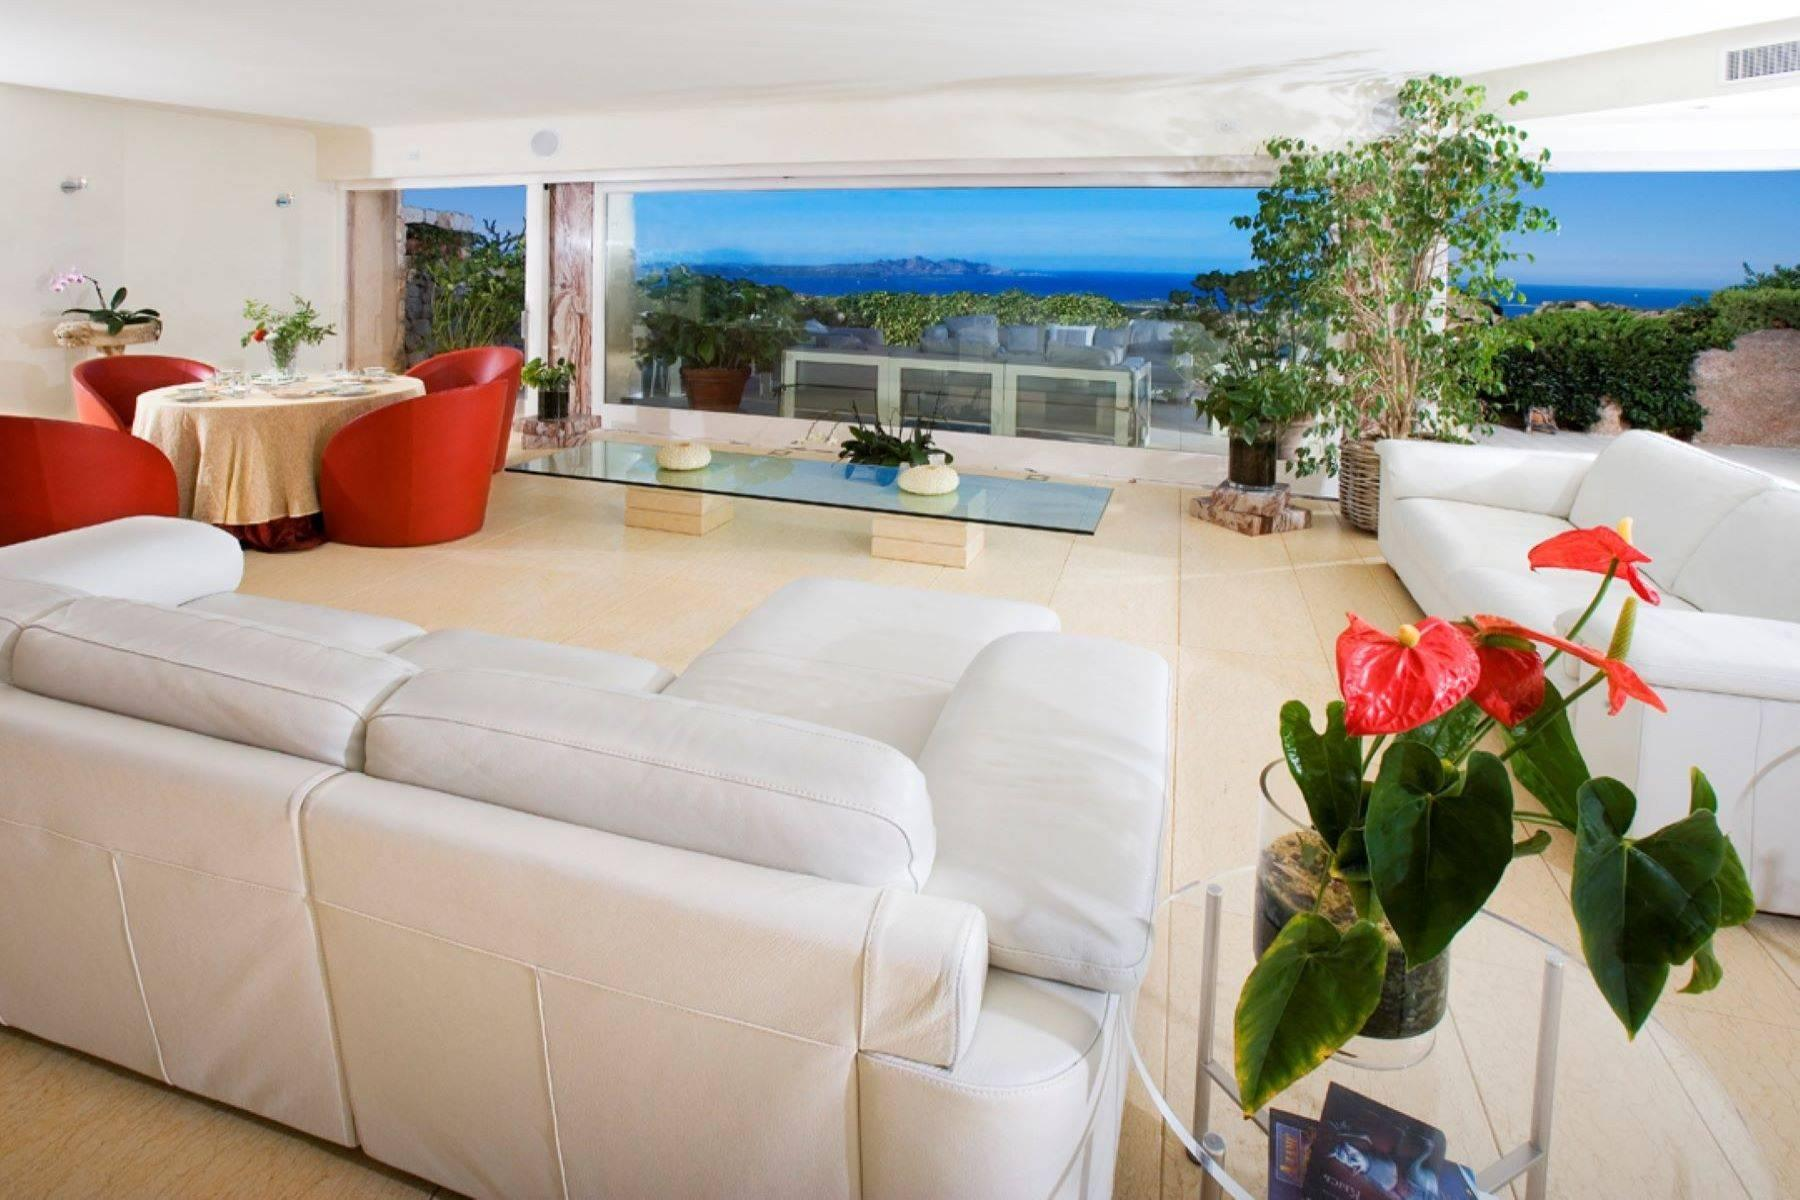 Exclusive property with stunning sea views overlooking the Costa Smeralda - 7